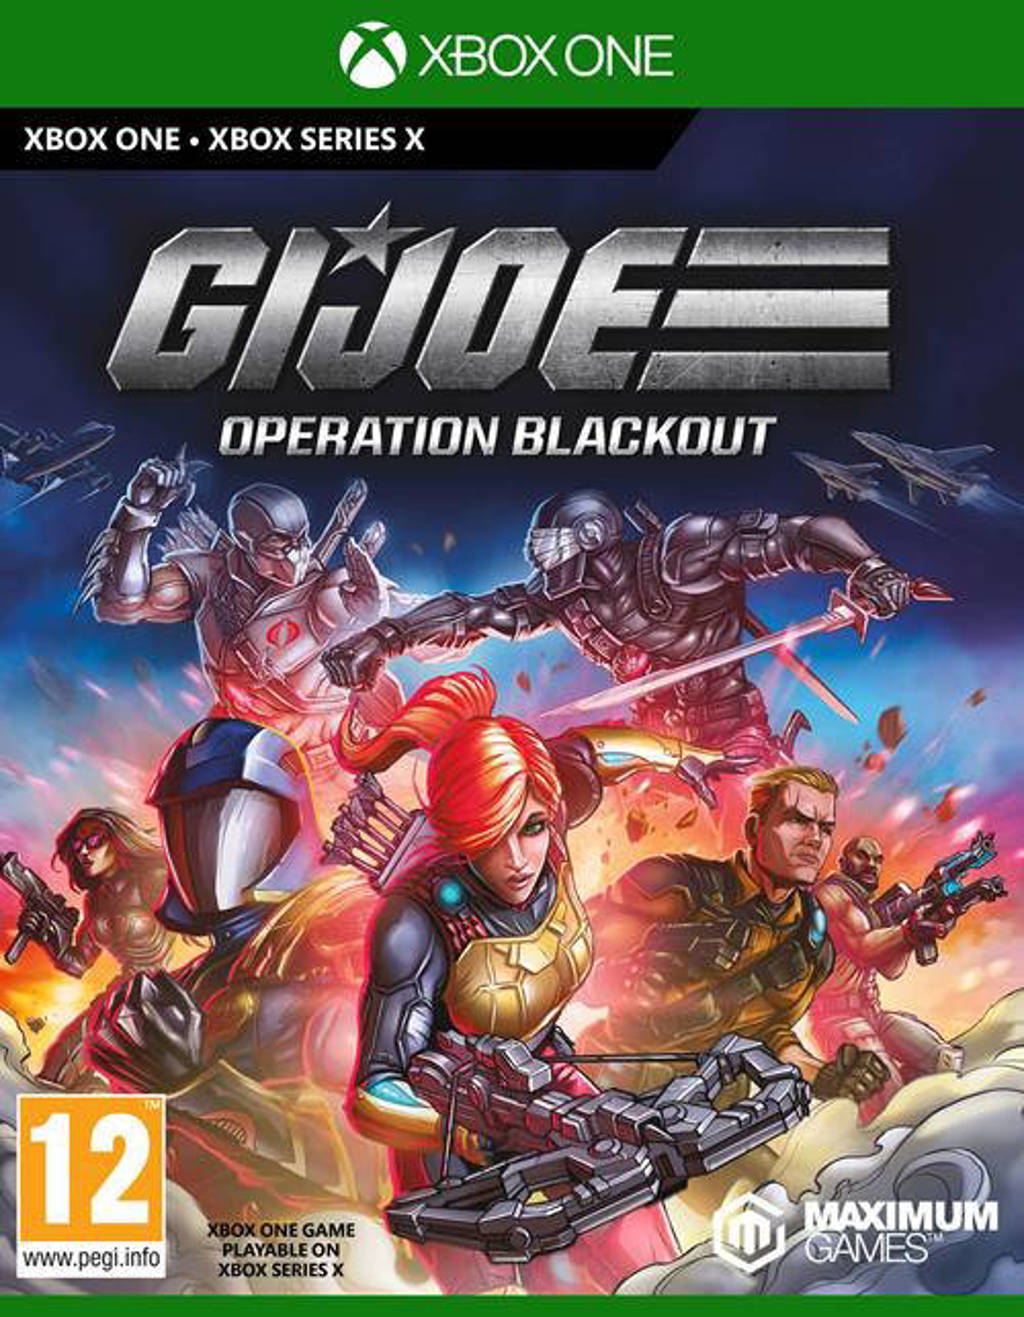 G.I. Joe - Operation blackout (Xbox One)